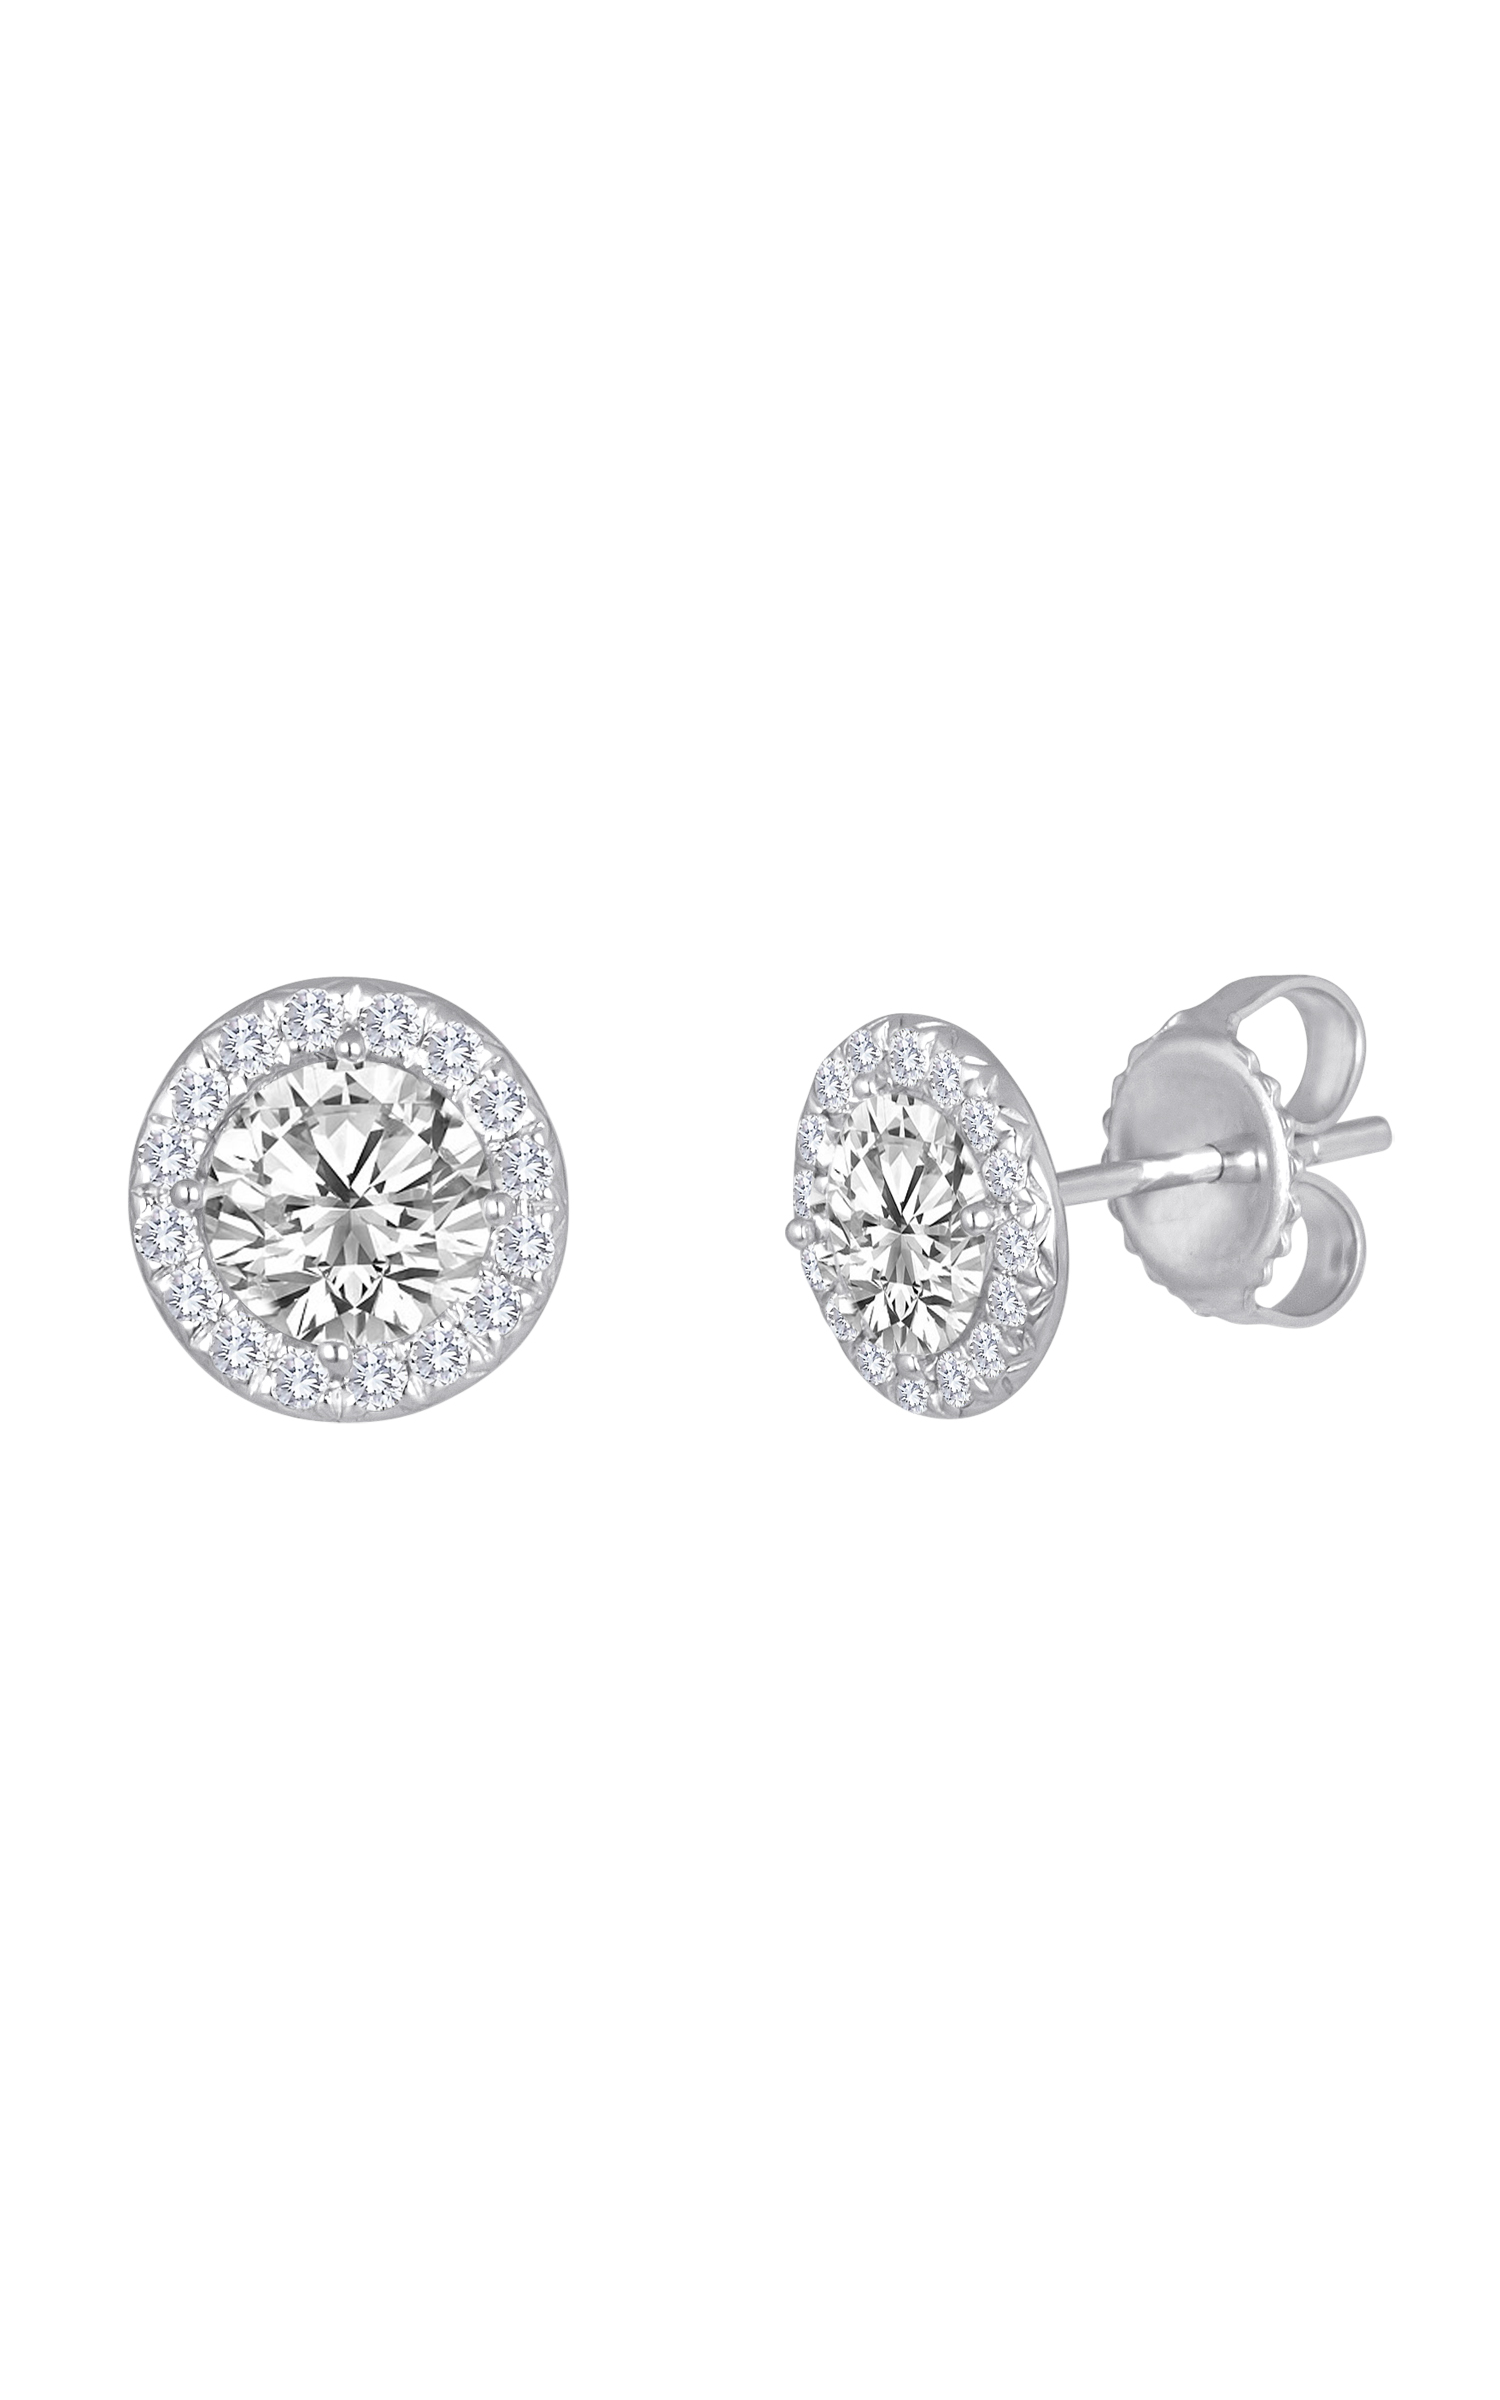 Beny Sofer Earrings Earring SE12-146-8C product image